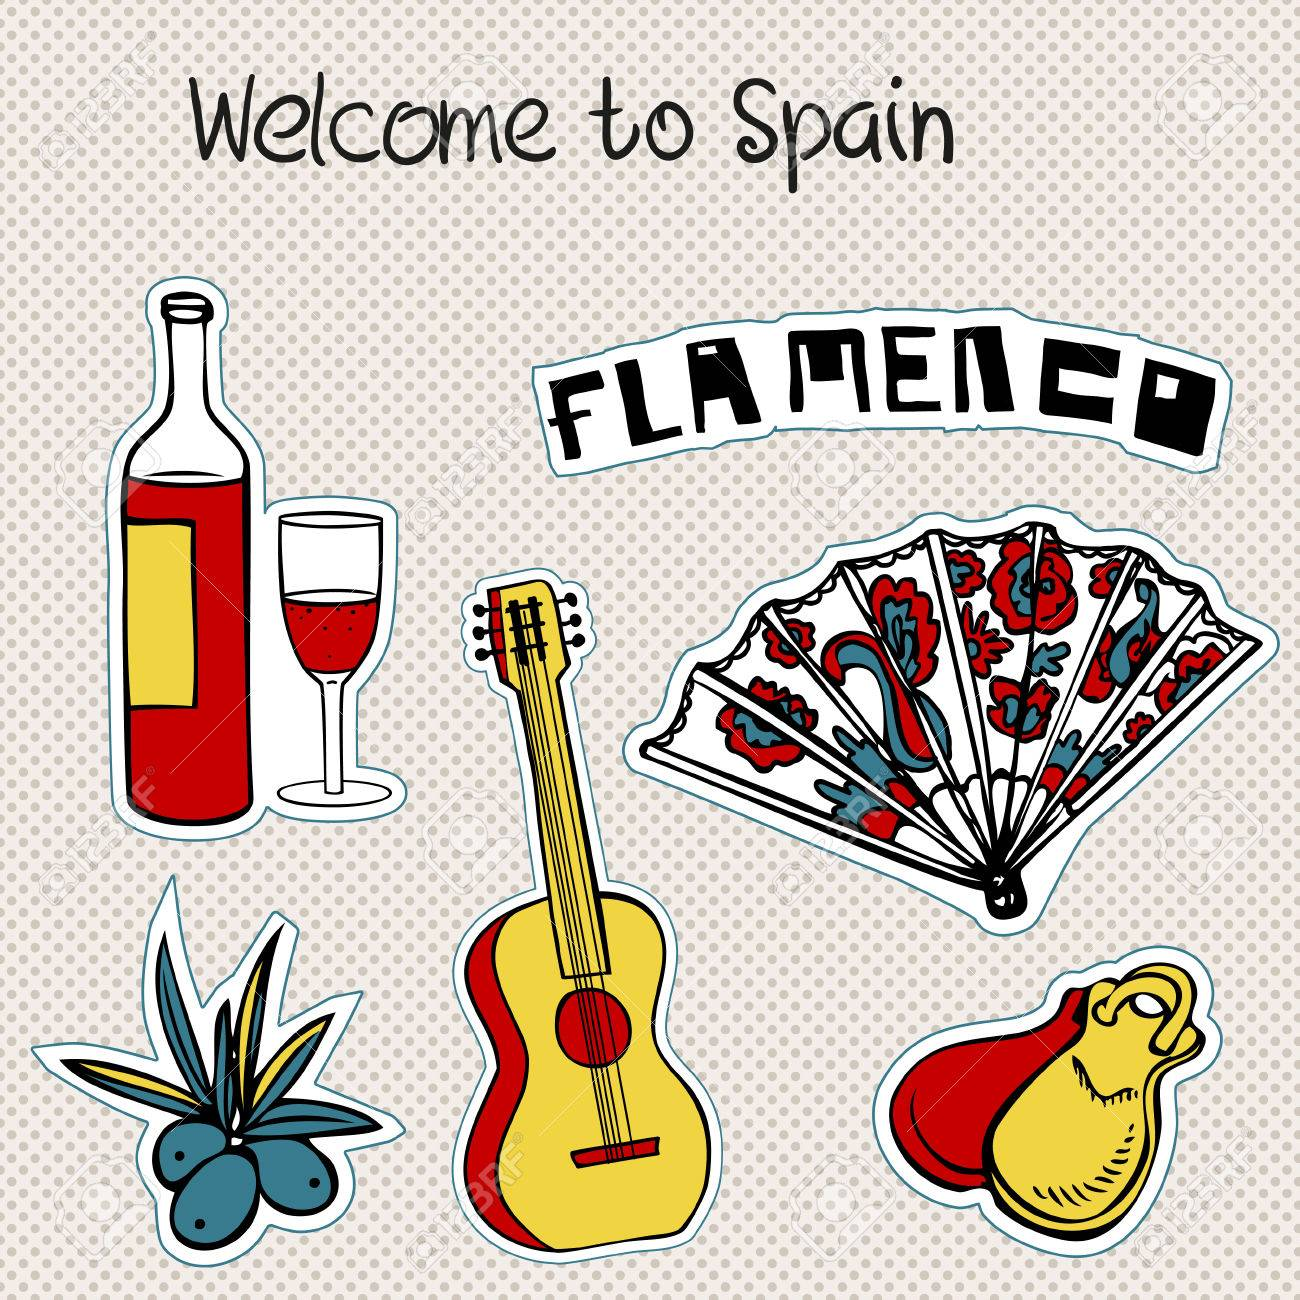 Travel spain doodles symbols of spain royalty free cliparts travel spain doodles symbols of spain stock vector 27532417 buycottarizona Images